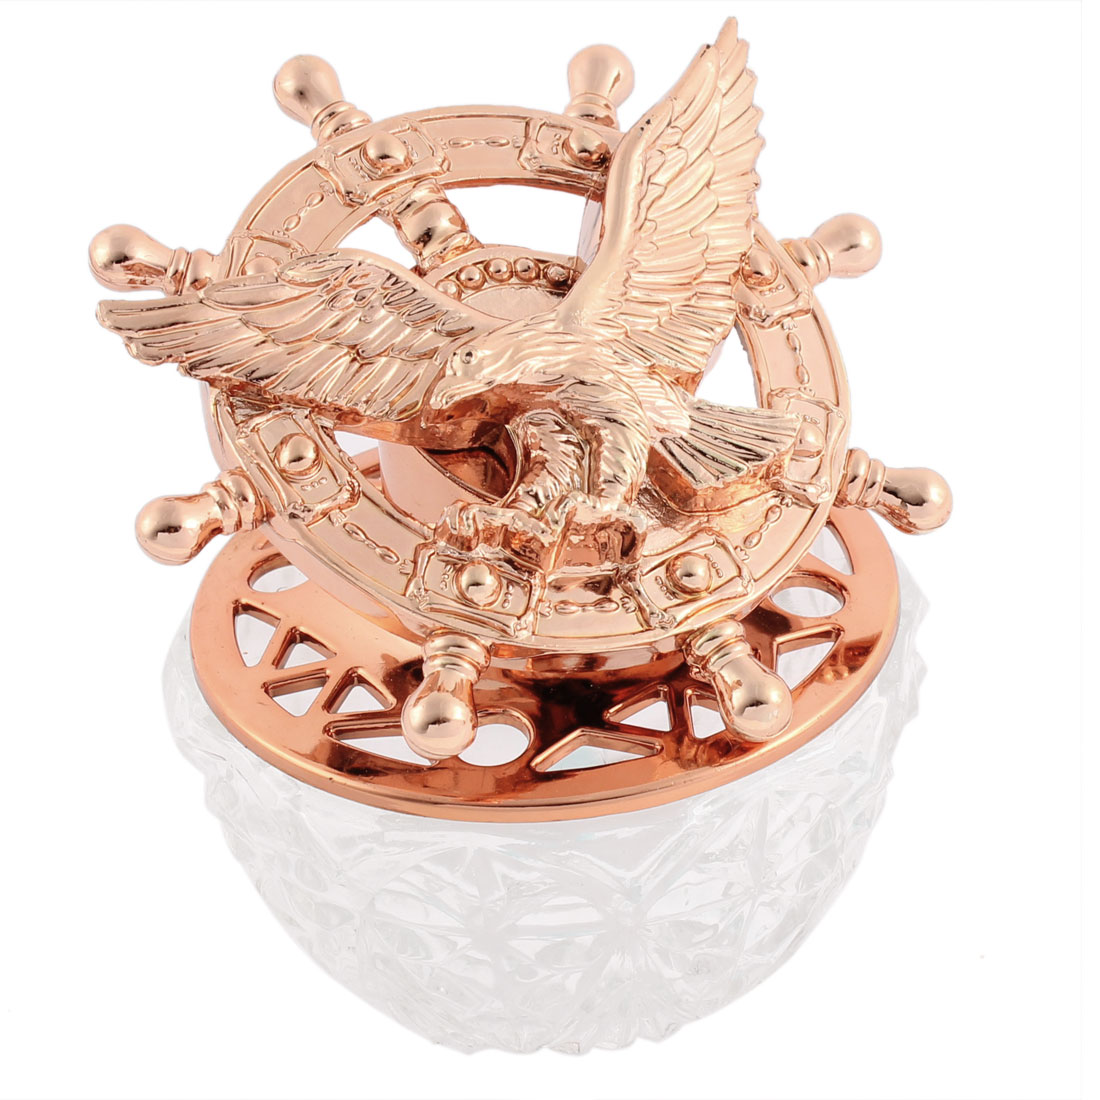 Clear Base Copper Tone Helmsman Shape Perfume Block Air Freshener for Car